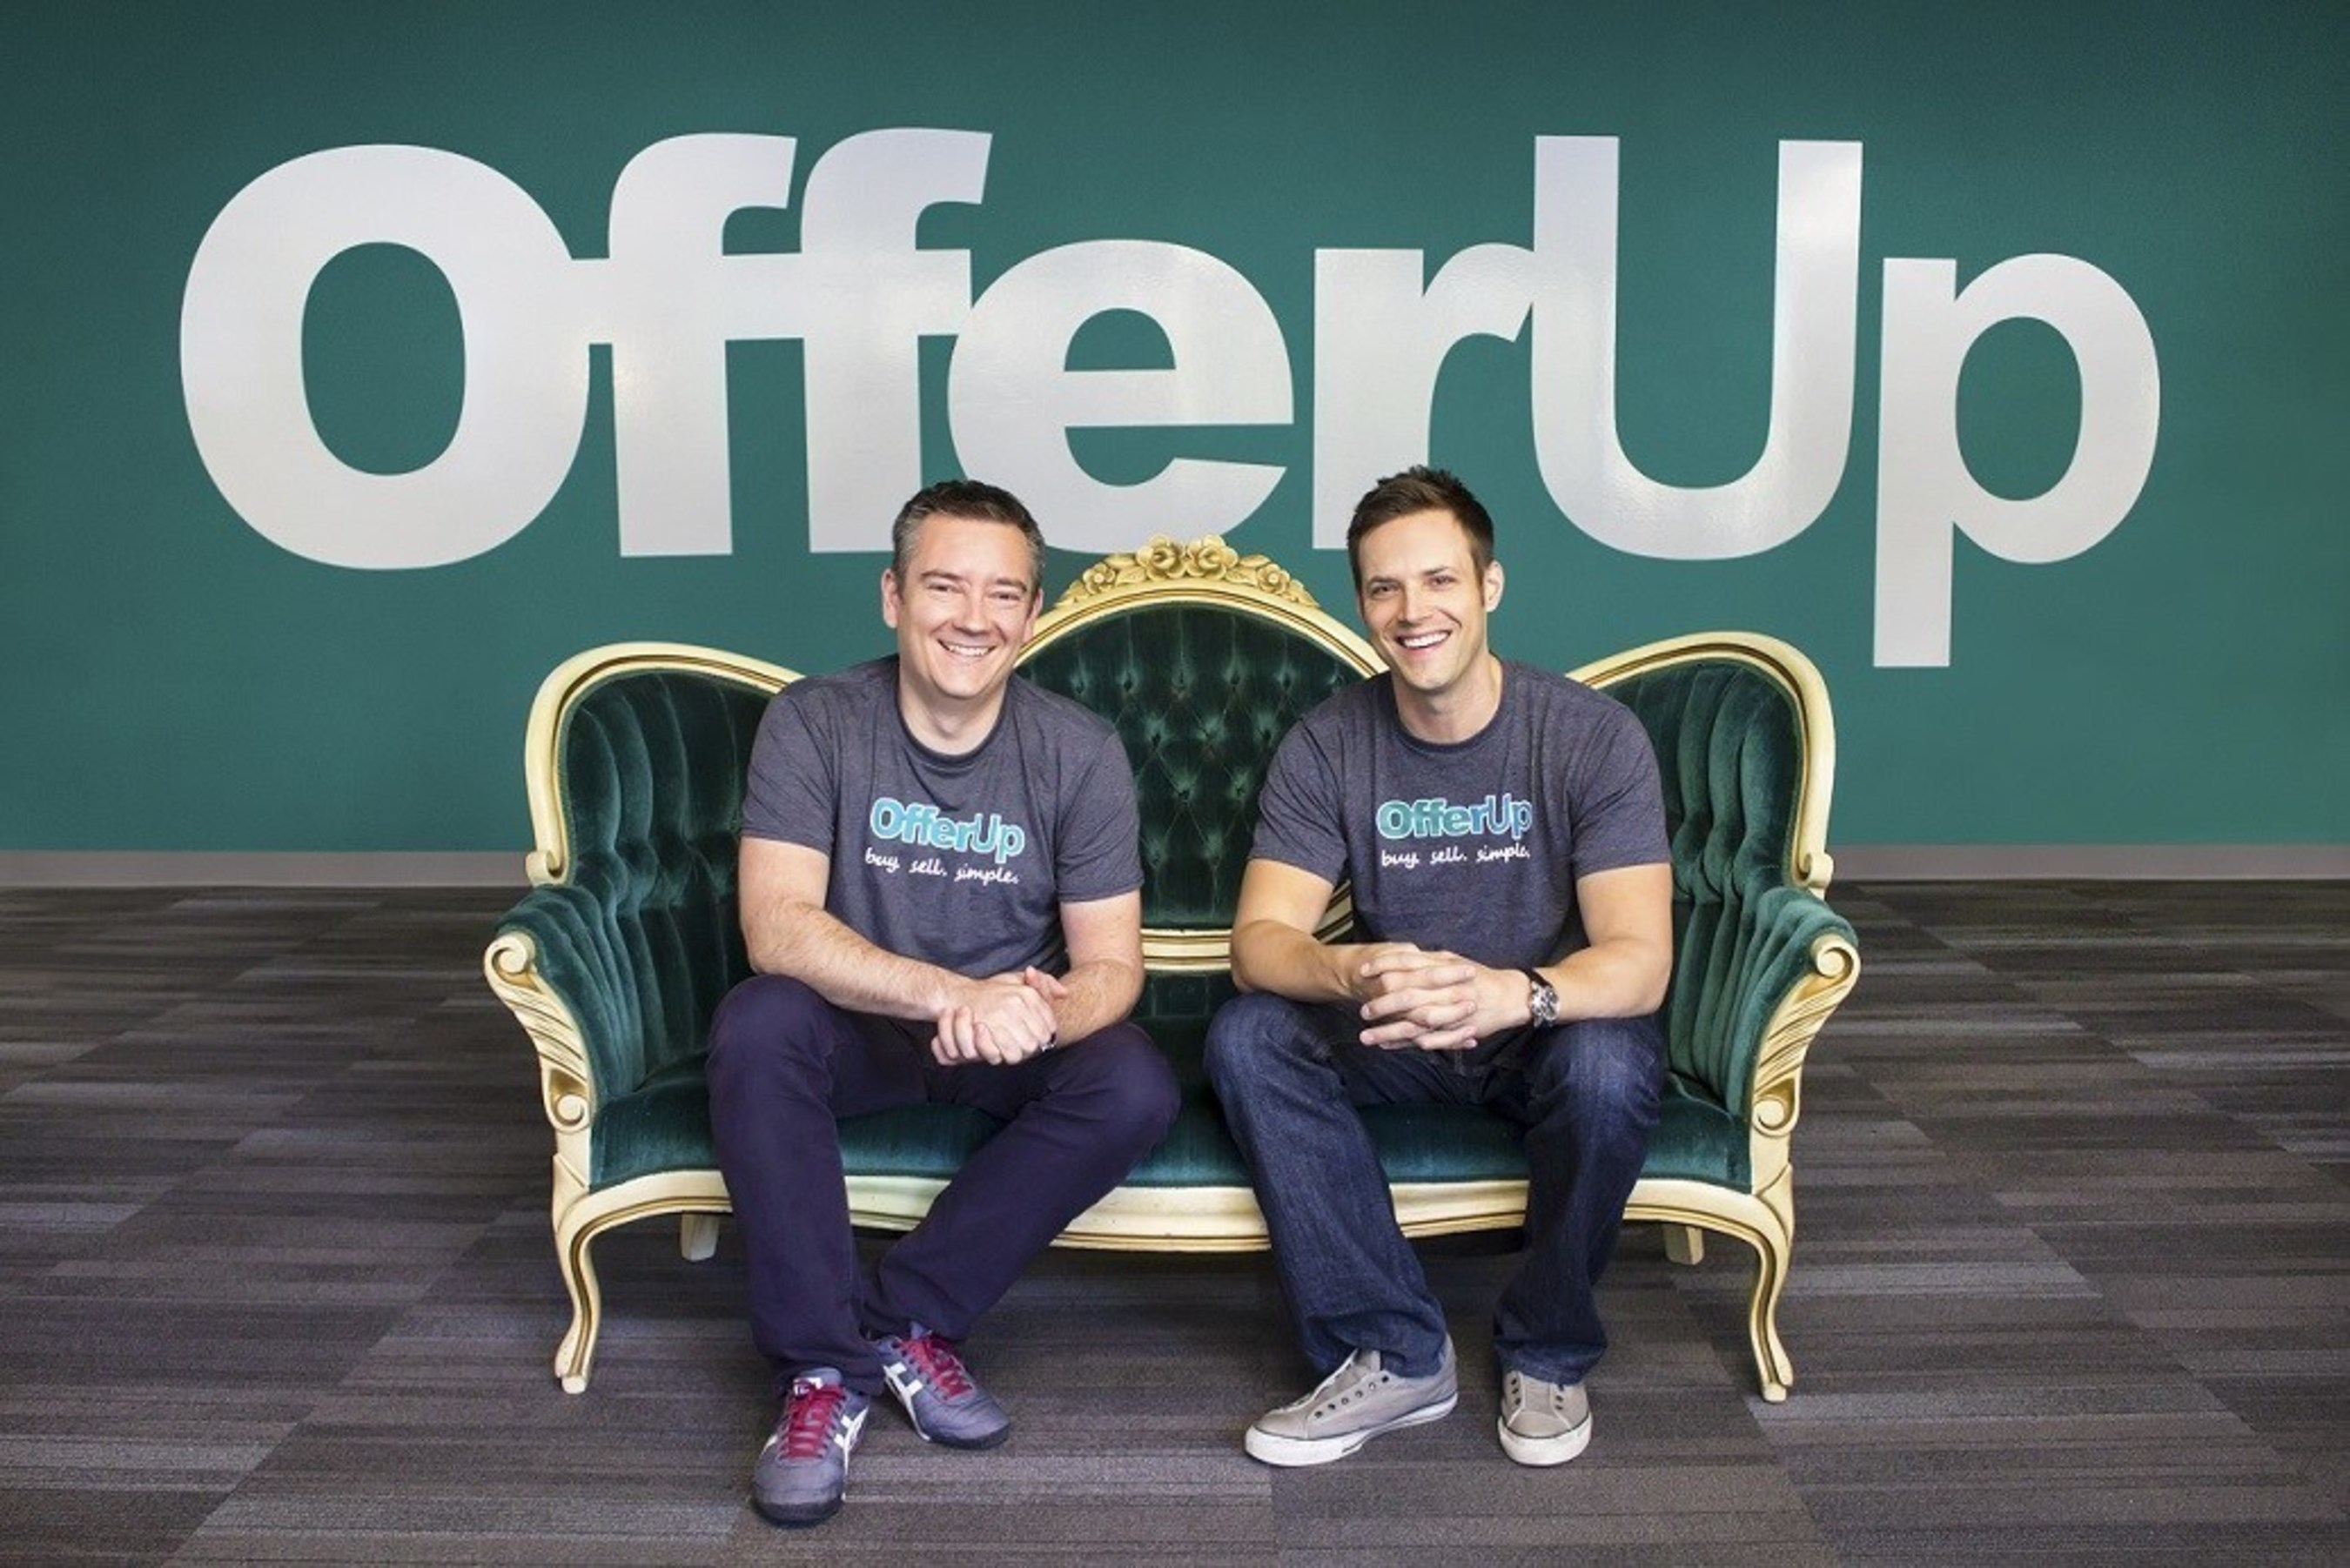 OfferUp Emerges from Stealth as the Largest Mobile Marketplace for Local Buyers and Sellers